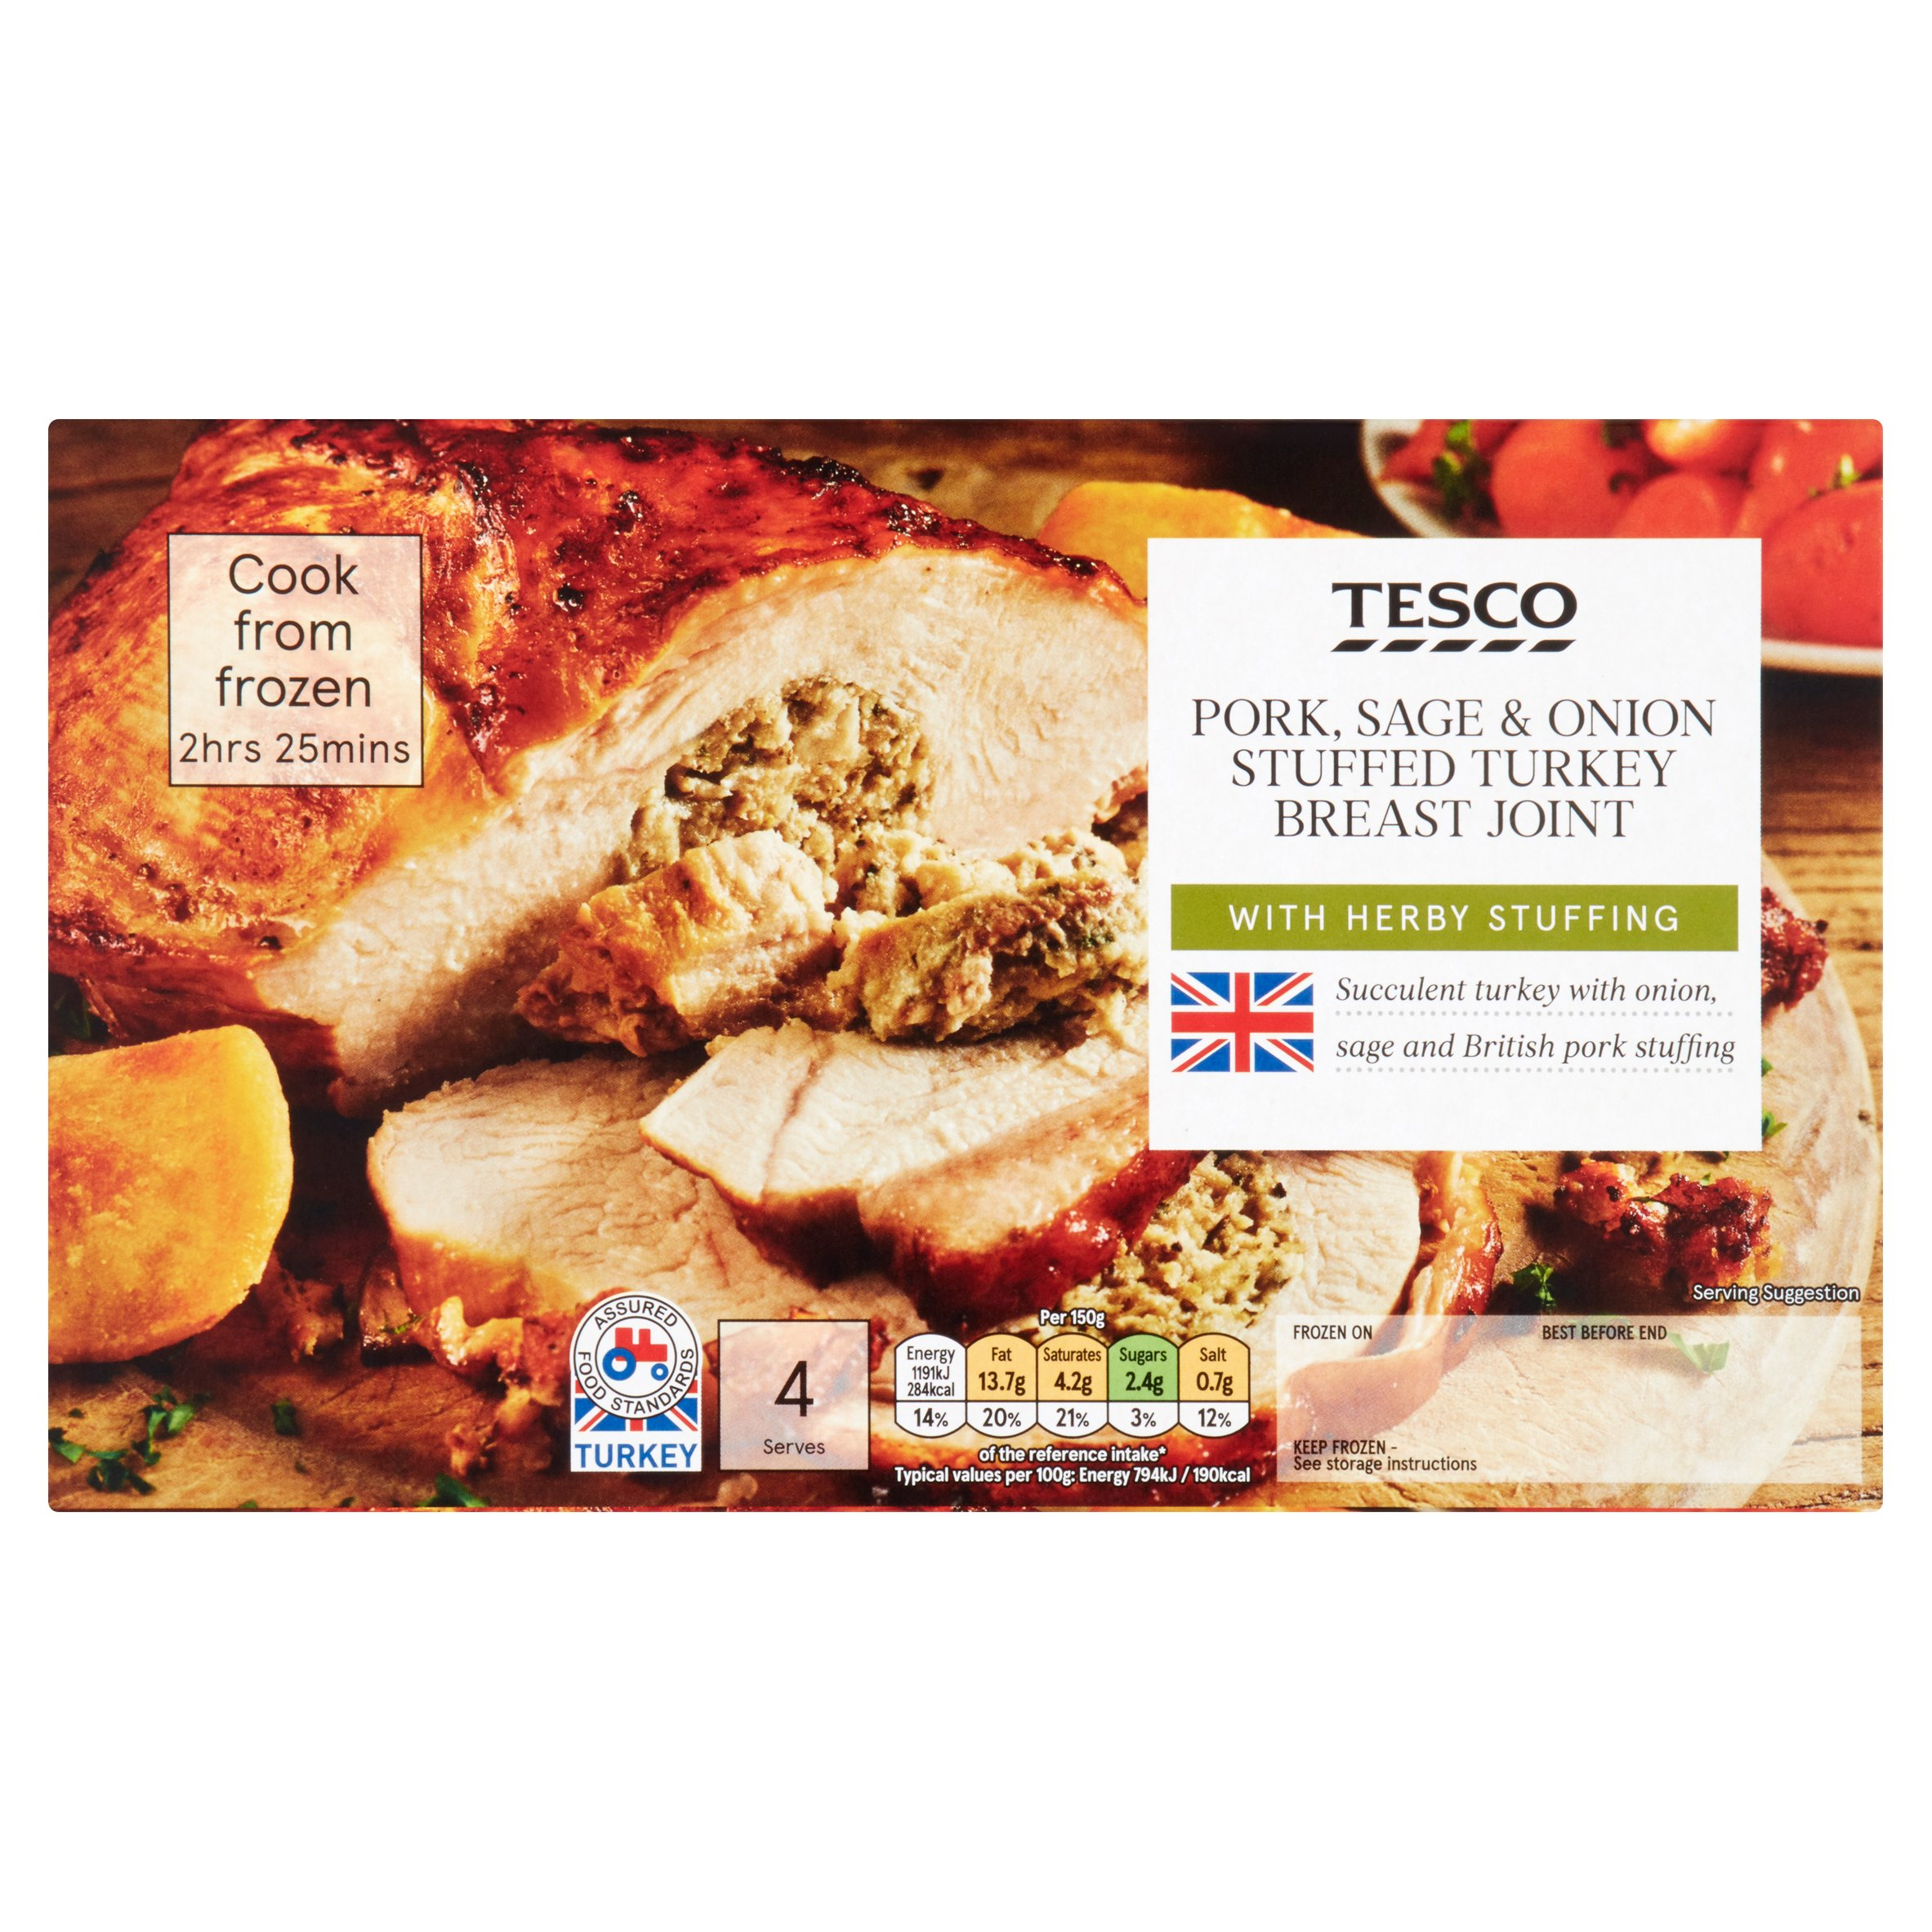 Tesco Pork, Sage and Onion Stuffed and Basted Frozen Turkey Breast Joint 780G